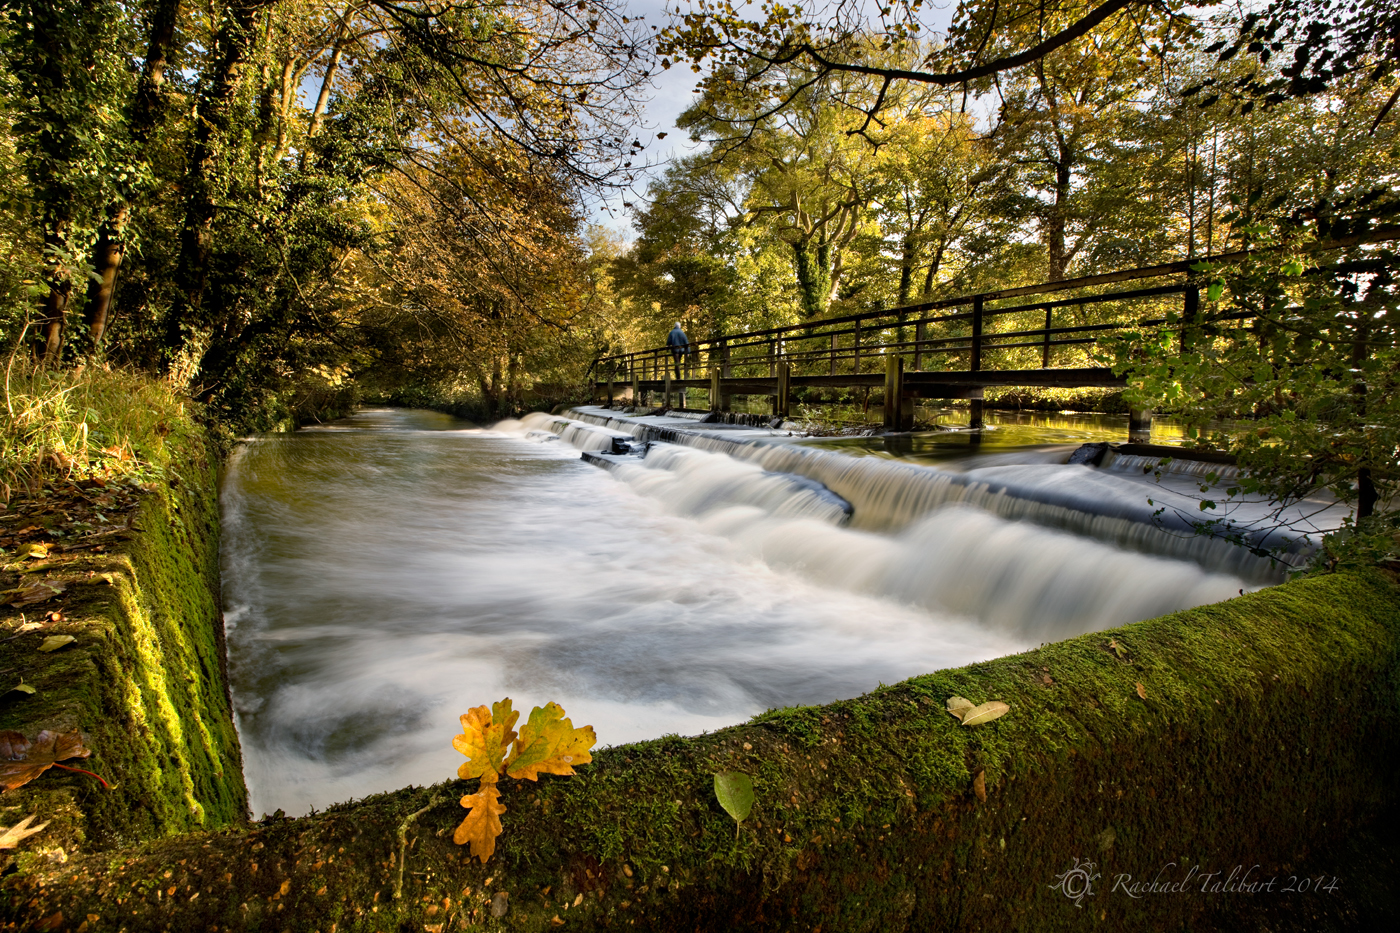 Coulson's Weir, Weybridge